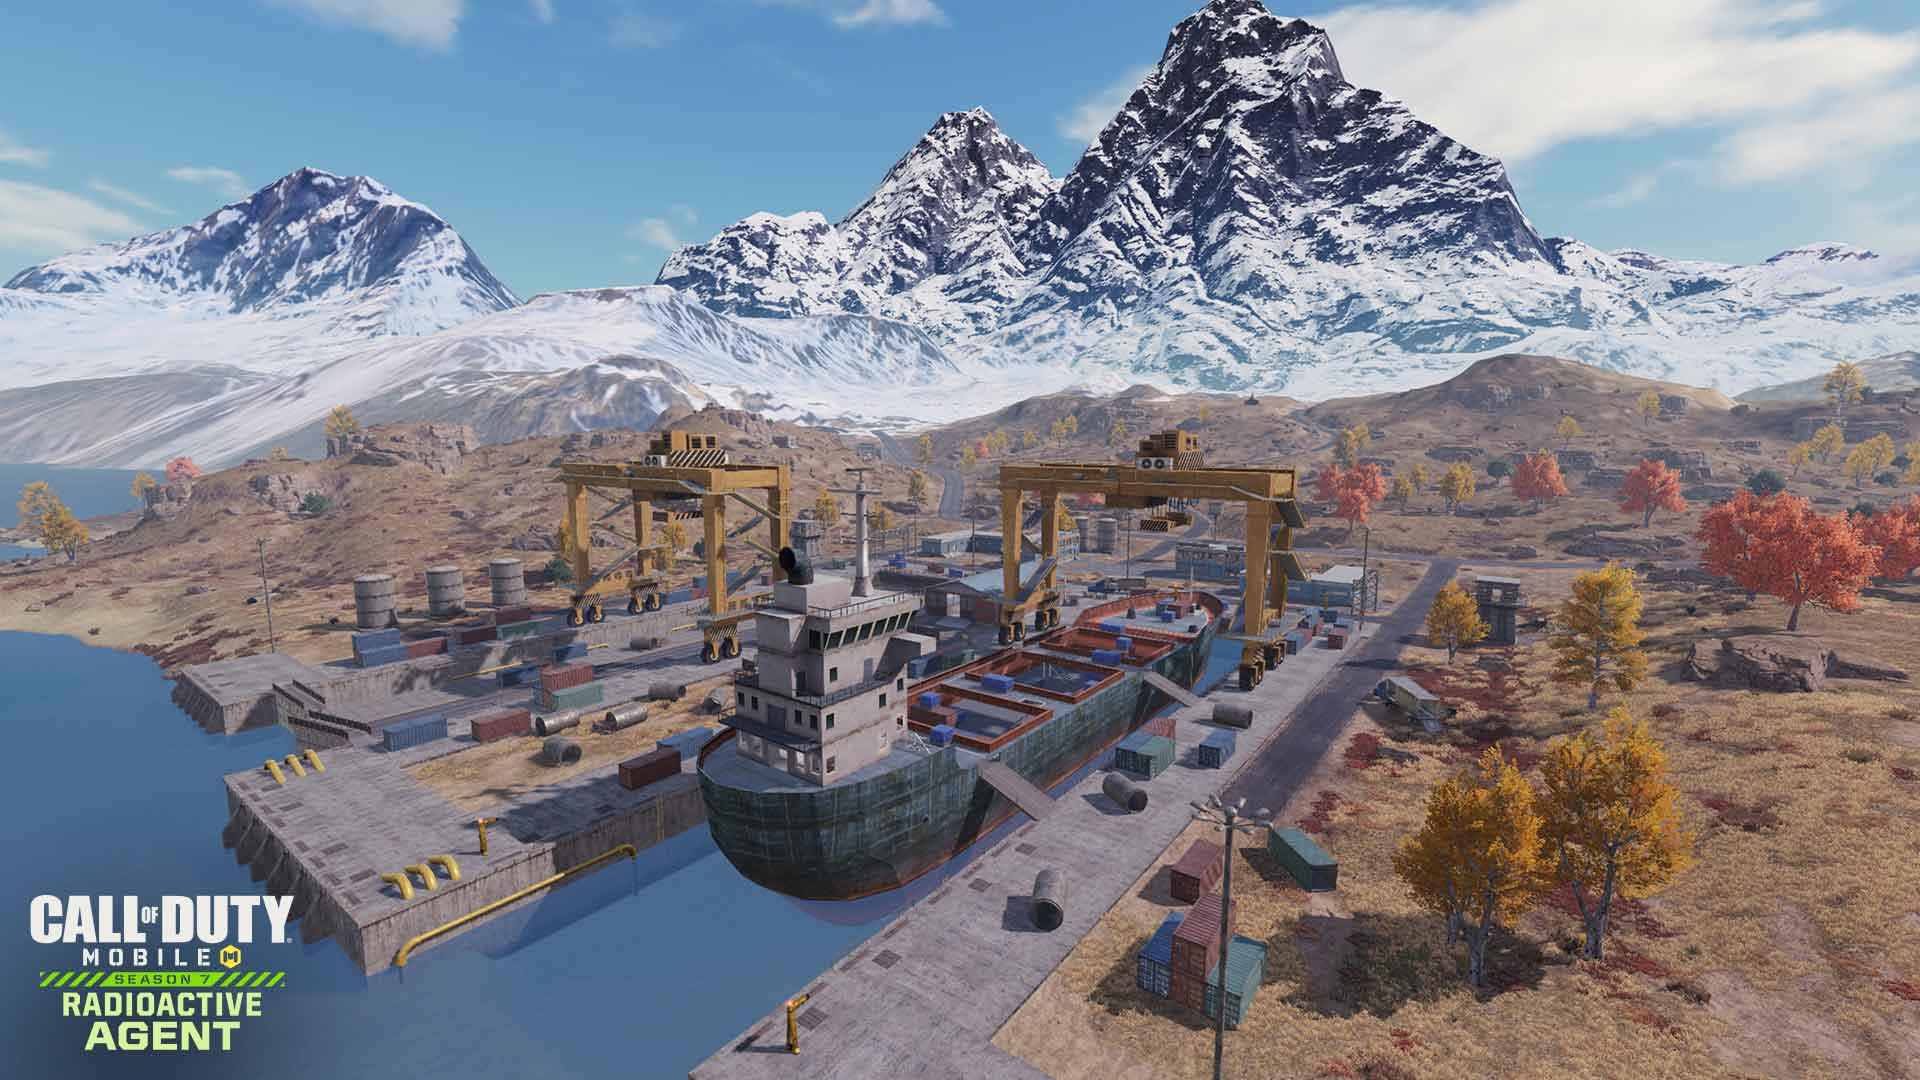 A Grand Tour of the Call of Duty®: Mobile Battle Royale Map Expansion - Image 5